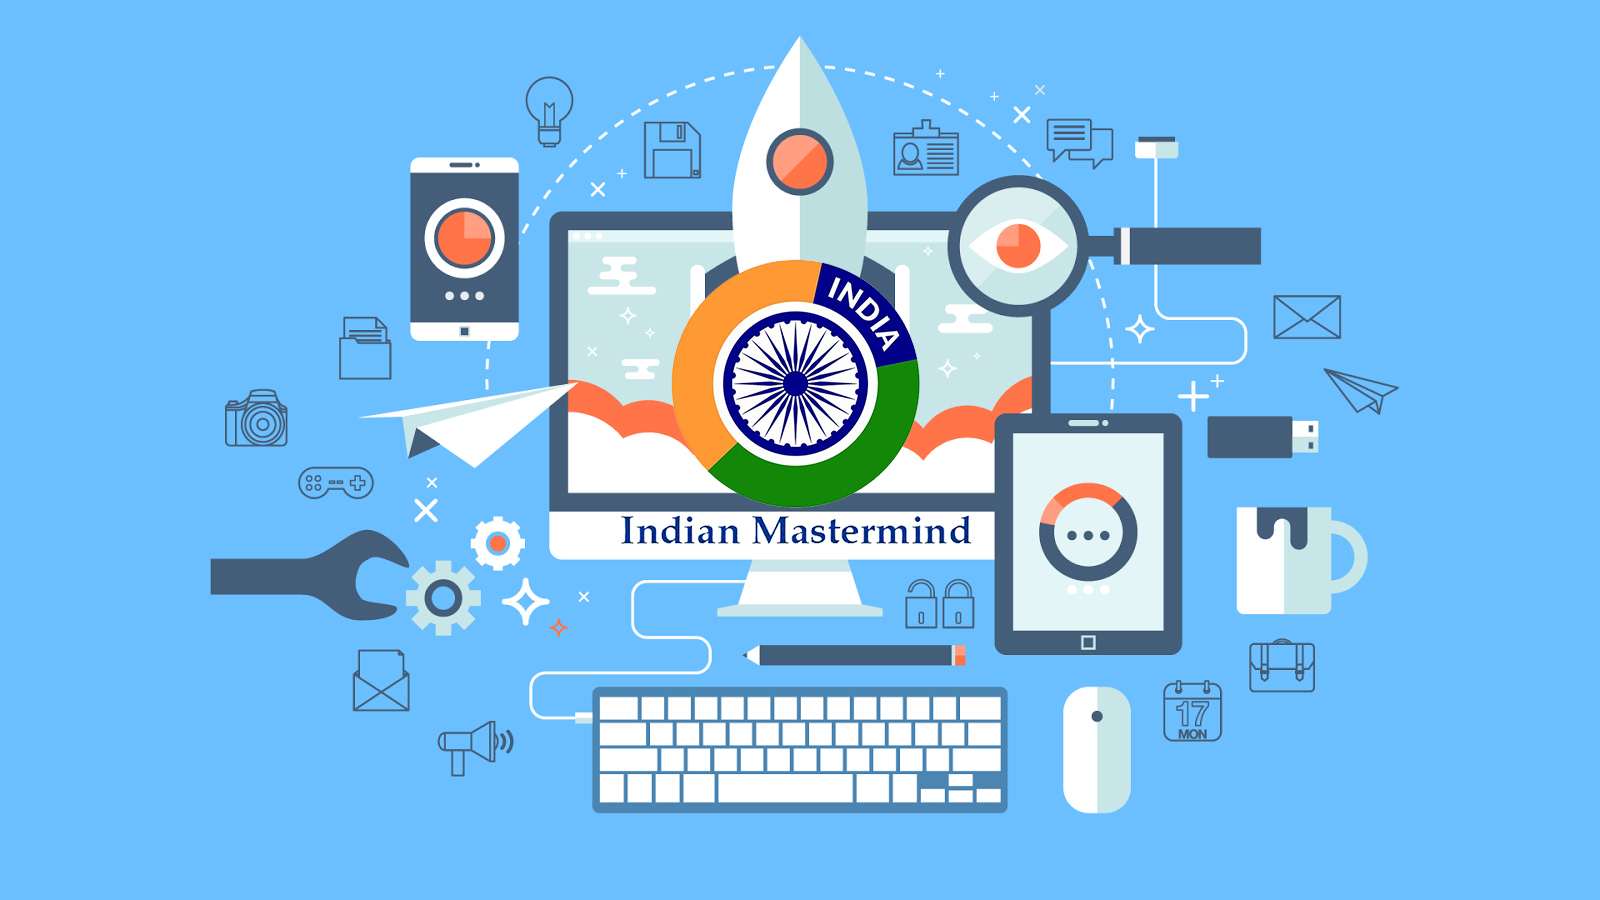 About Us (www.indianmastermind.com)